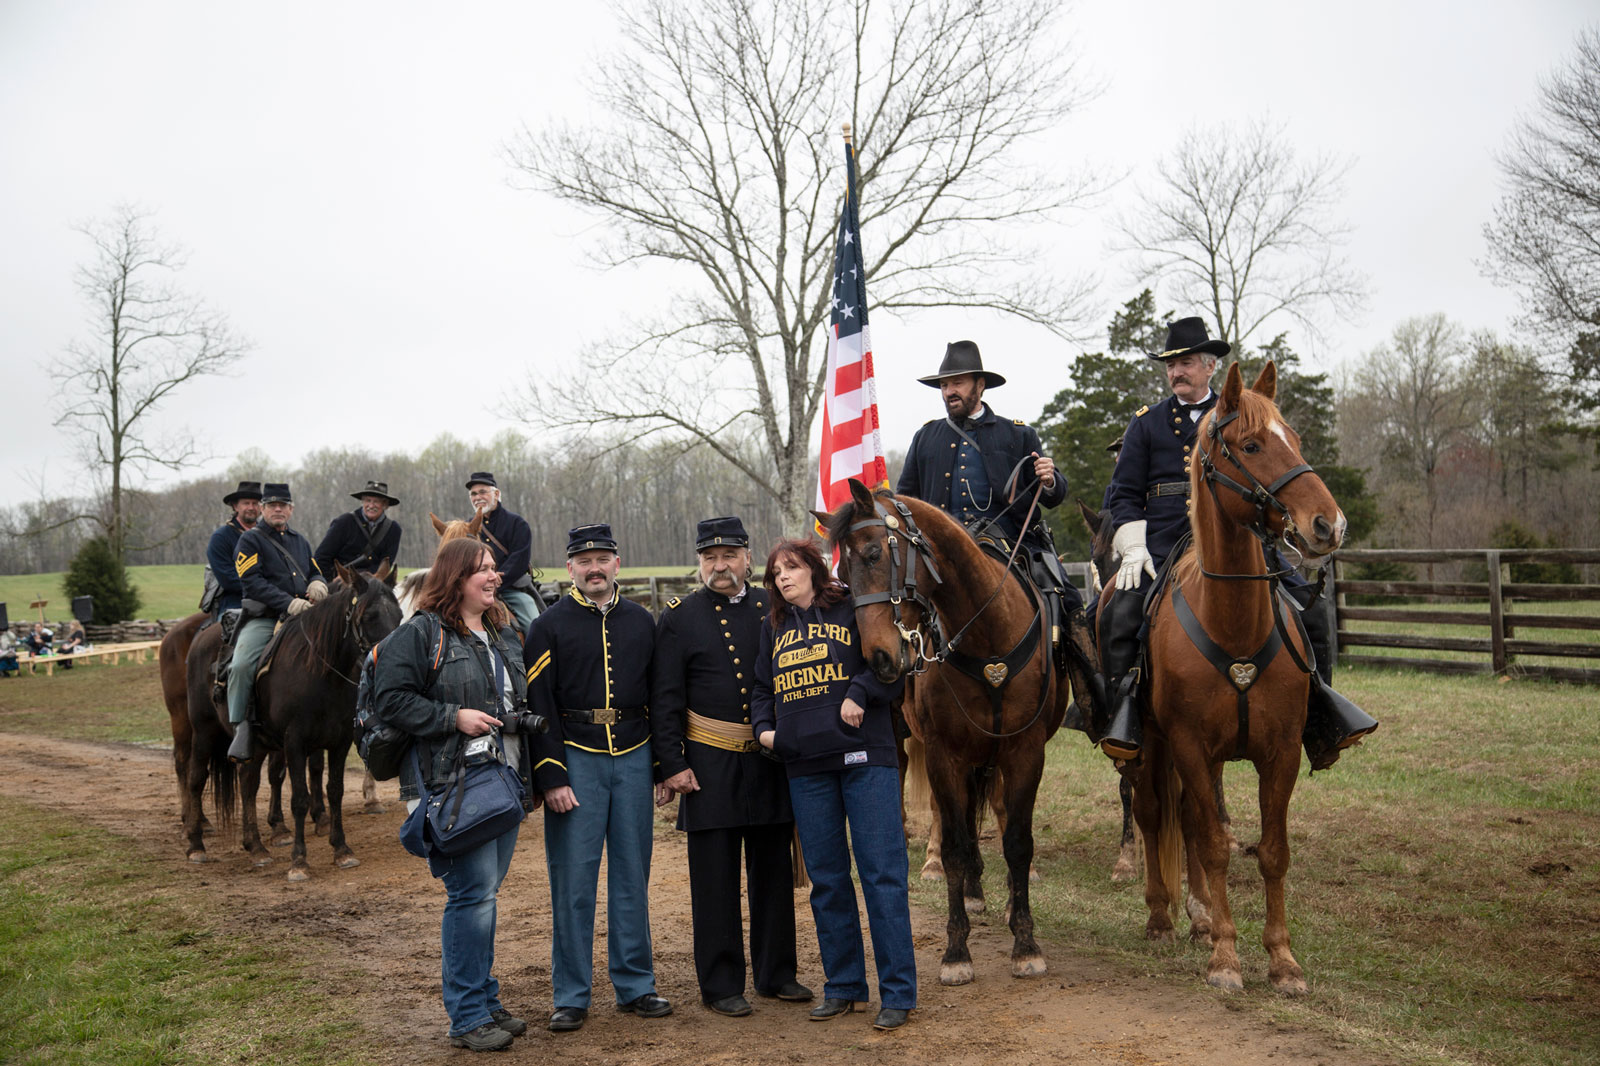 The horse of Gen. Grant reenactor, Curt Fields, brushes against a surprised tourist posing for a snapshot at Appomattox.